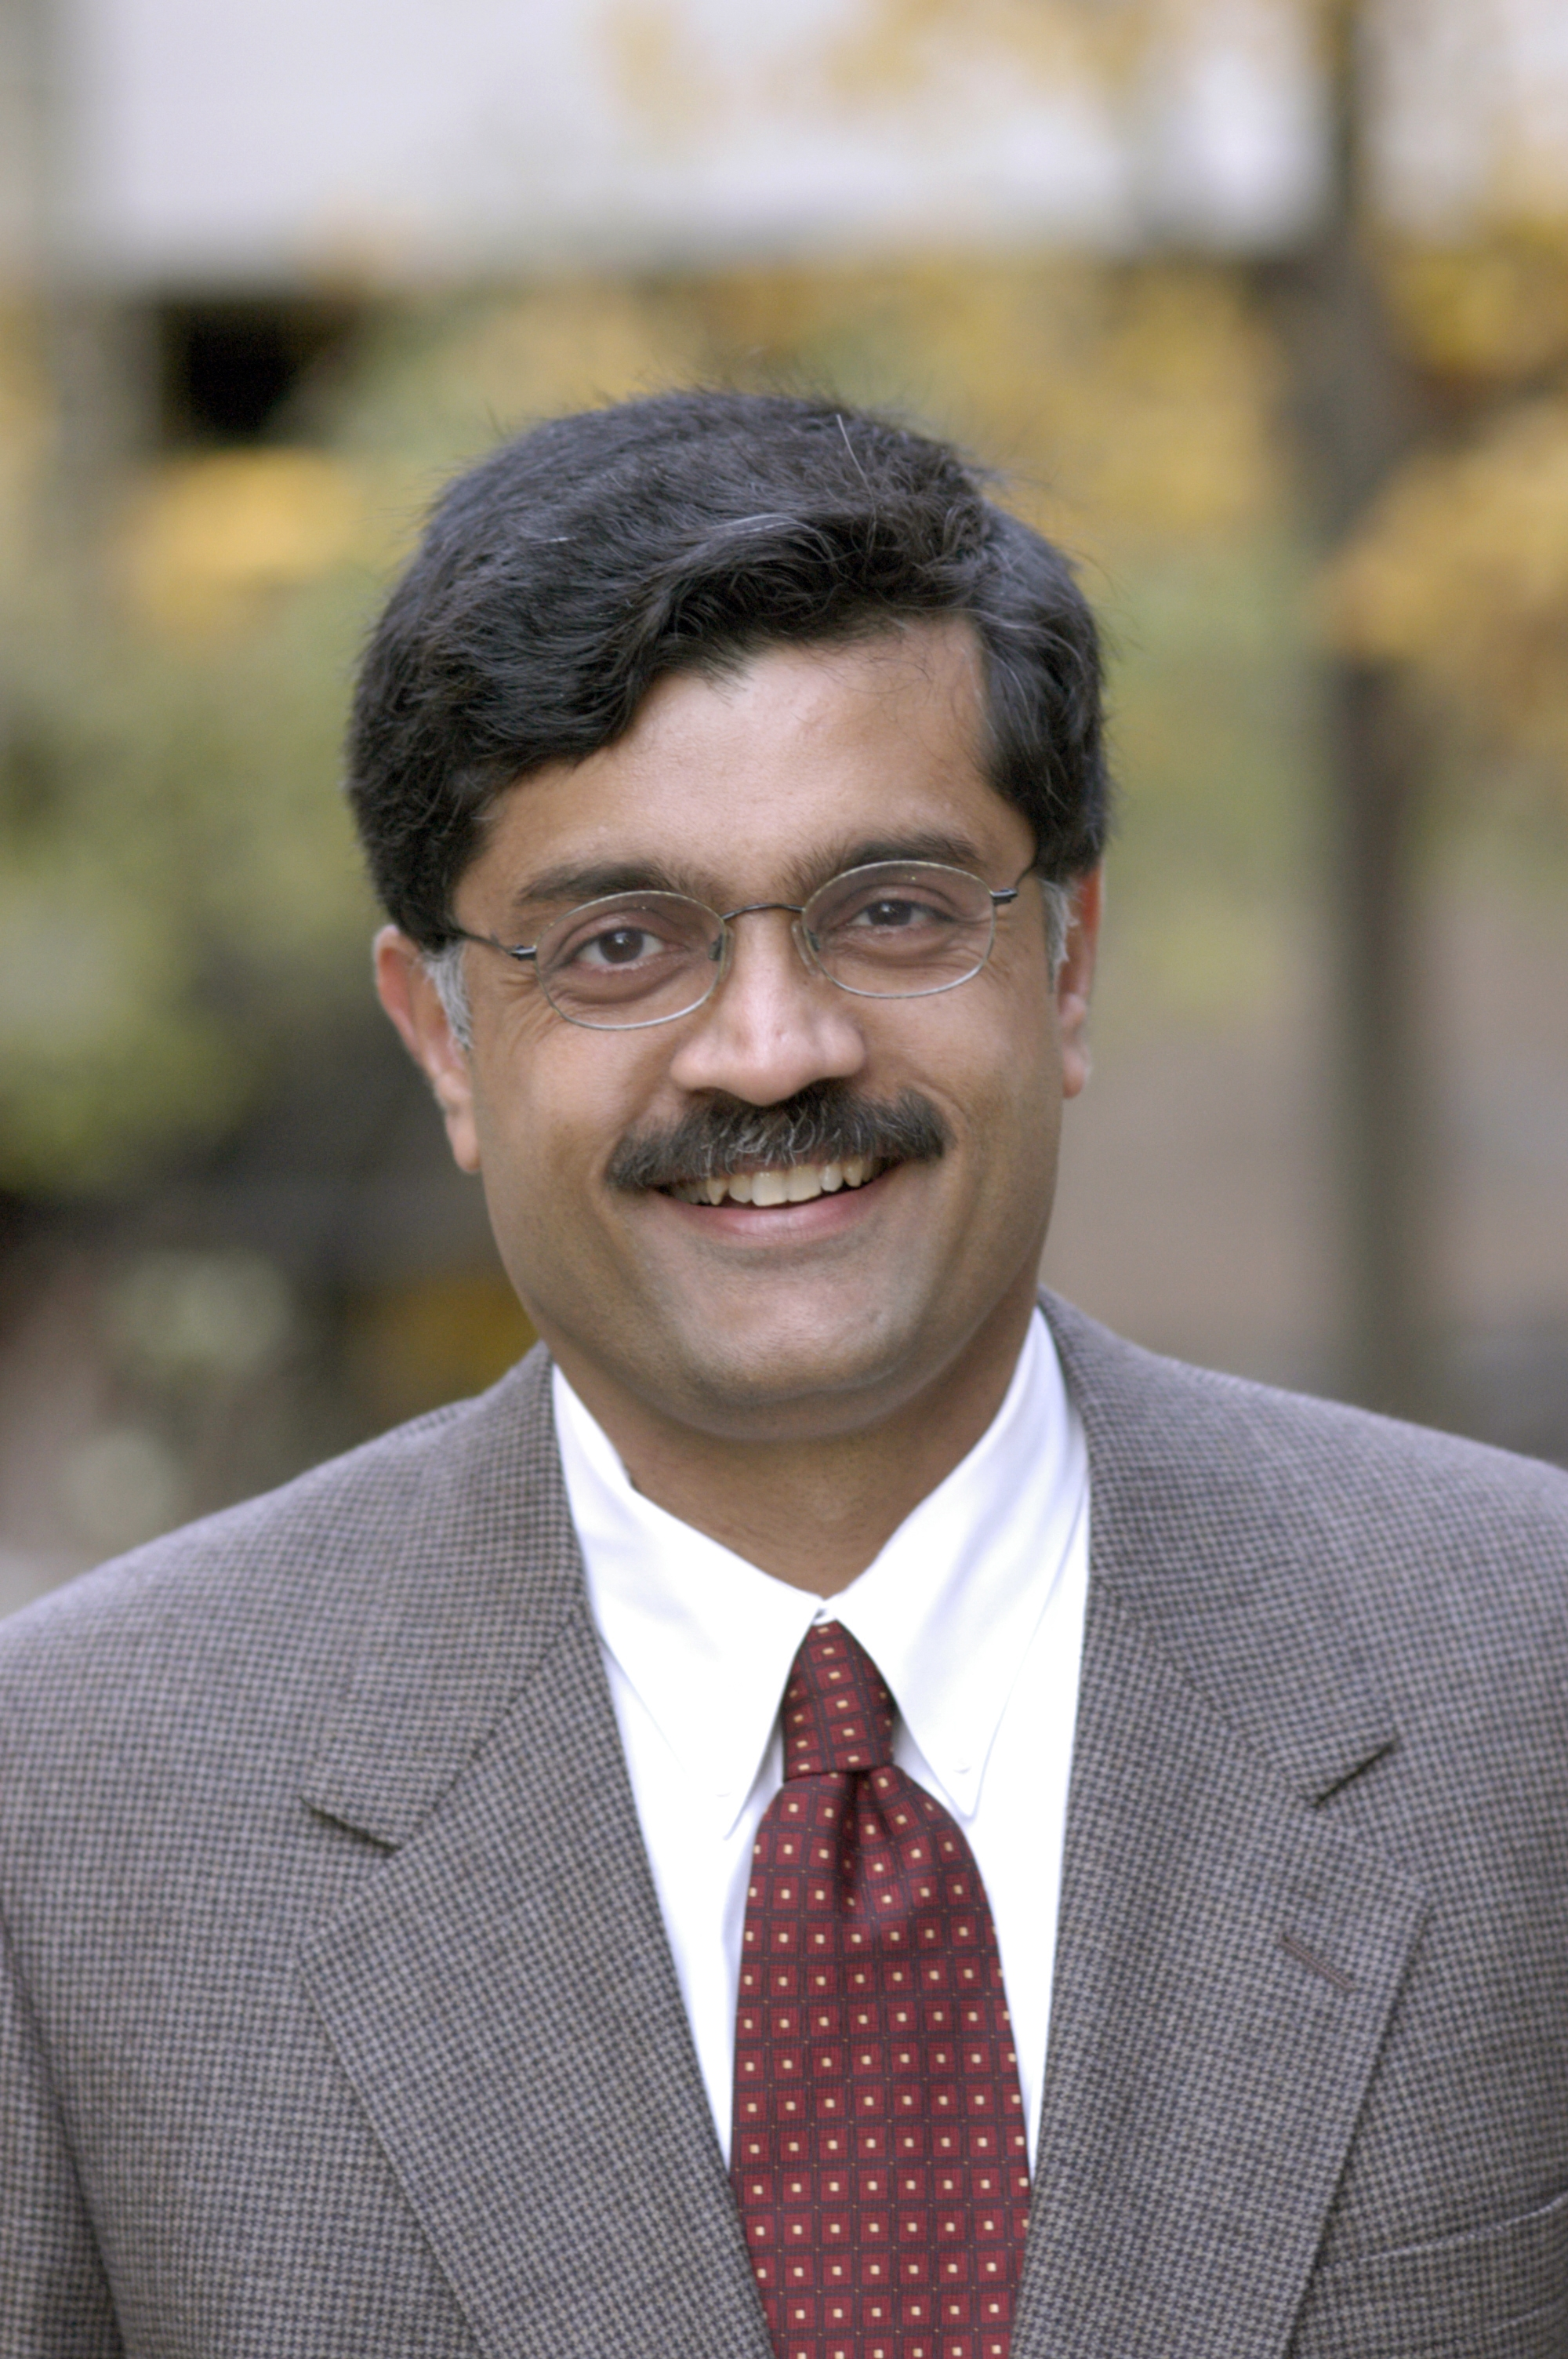 Author Photo (jpg): Venkat Ramaswamy - 8071_68625954_hr